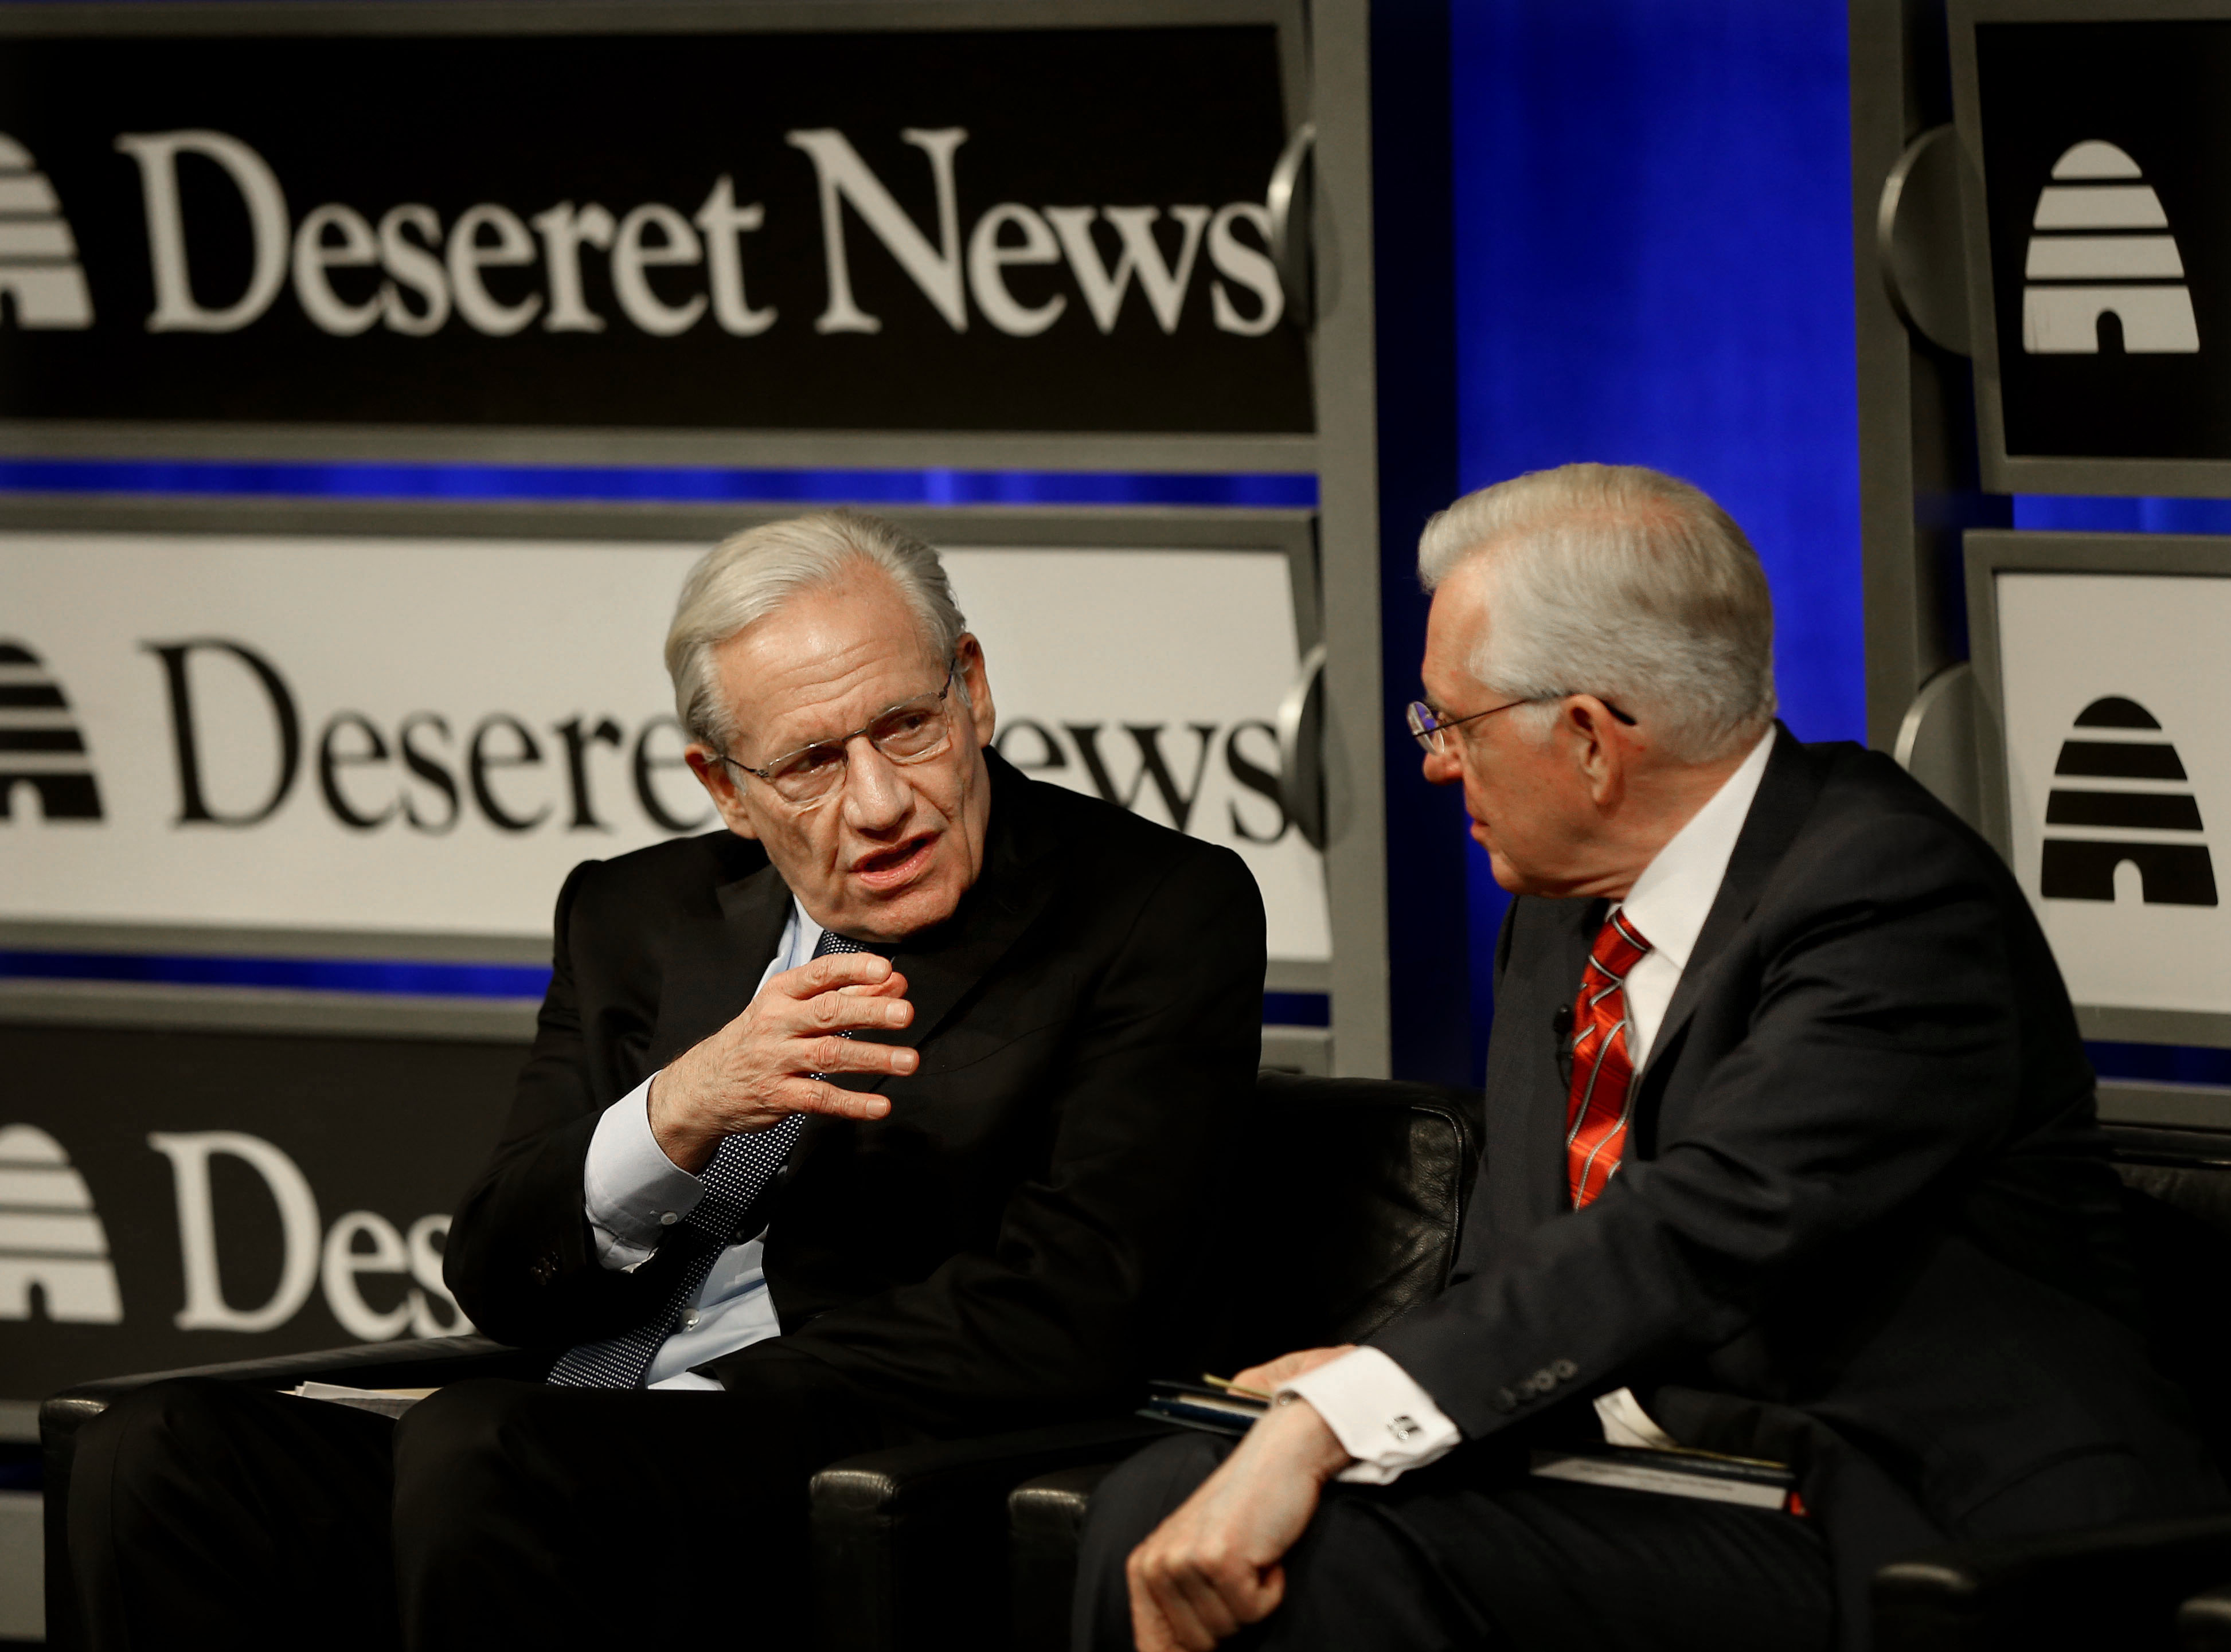 """Bob Woodward, Washington Post reporter who broke the Watergate story in 1973 and current associate editor at the Post, speaks to Elder D. Todd Christofferson, a member of the Quorum of the Twelve Apostles during """"Integrity and Trust: Lessons from Watergate and Today"""" at the Newseum in Washington, D.C., on Monday, Jan. 14, 2019."""